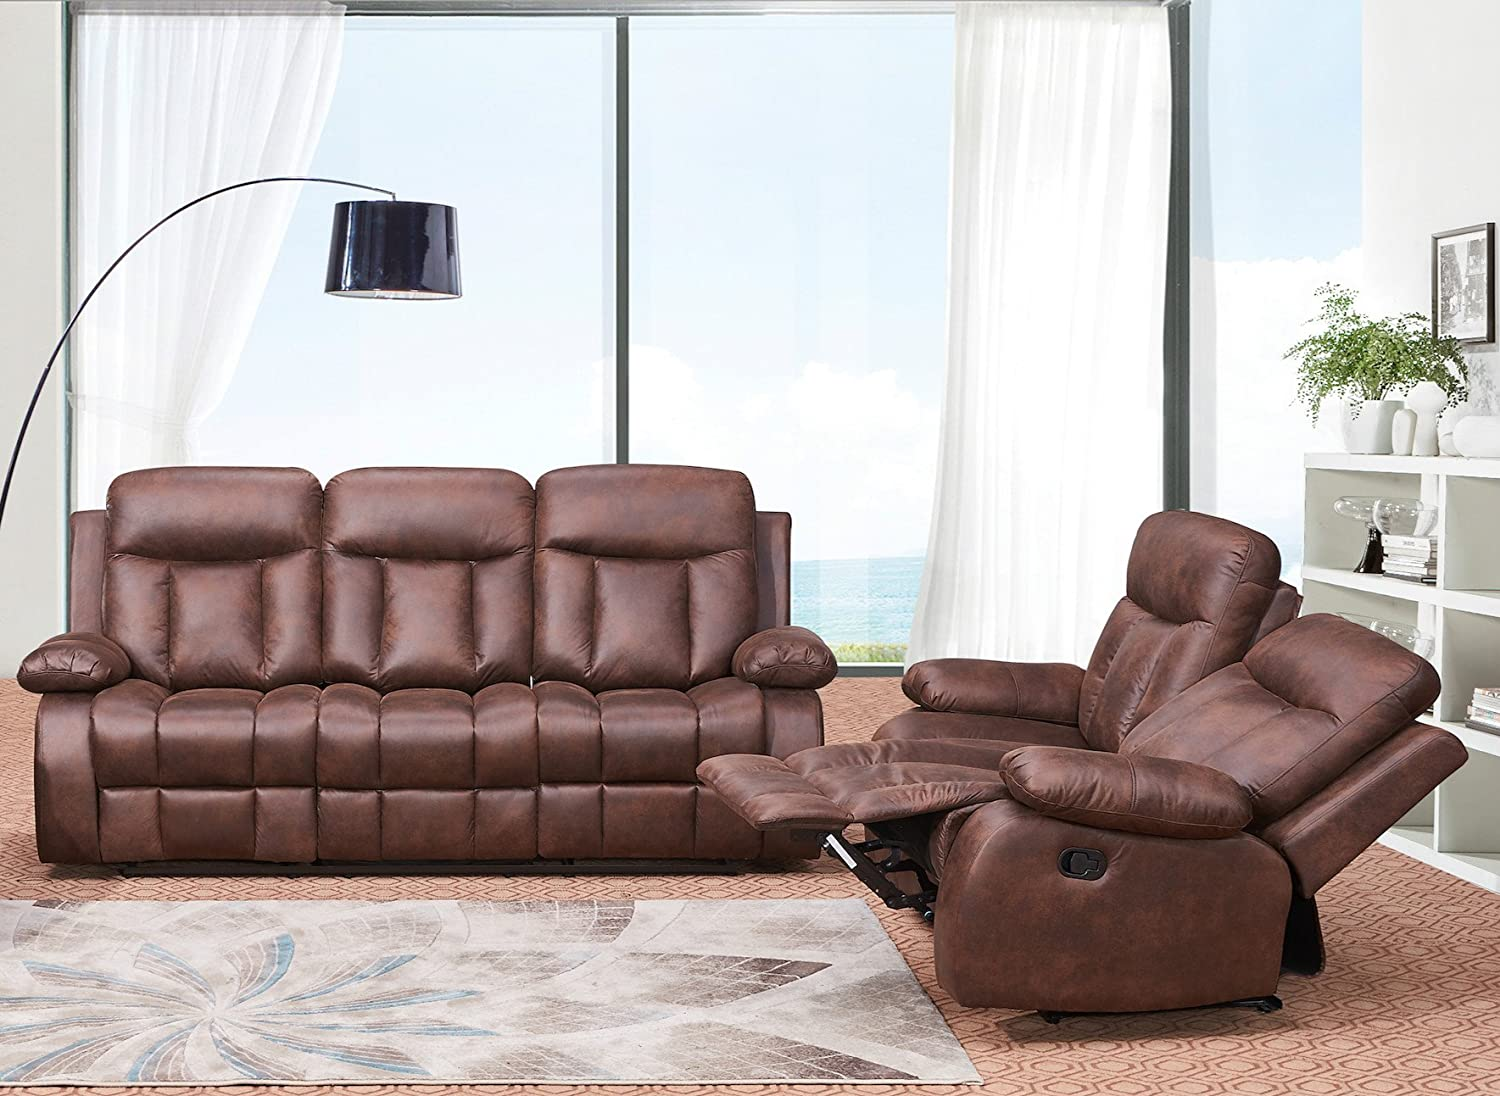 Betsy Furniture 2-PC Microfiber Fabric Recliner Set Living Room Set in Brown Sofa Loveseat Chair Pillow Top Backrest and Armrests 8028-32